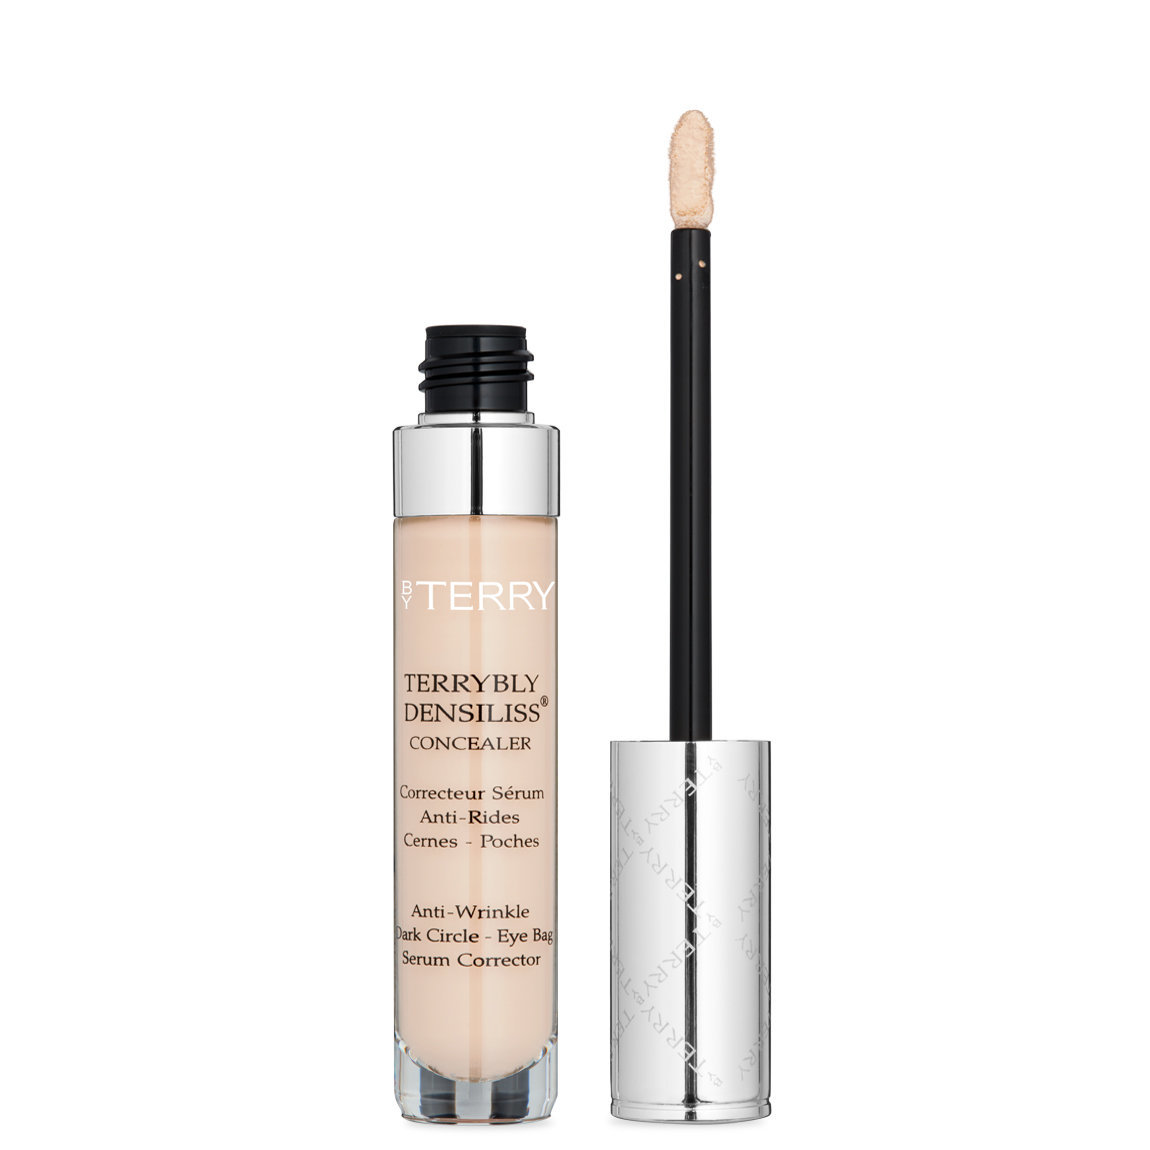 BY TERRY Terrybly Densiliss Concealer 1 Fresh Fair alternative view 1.